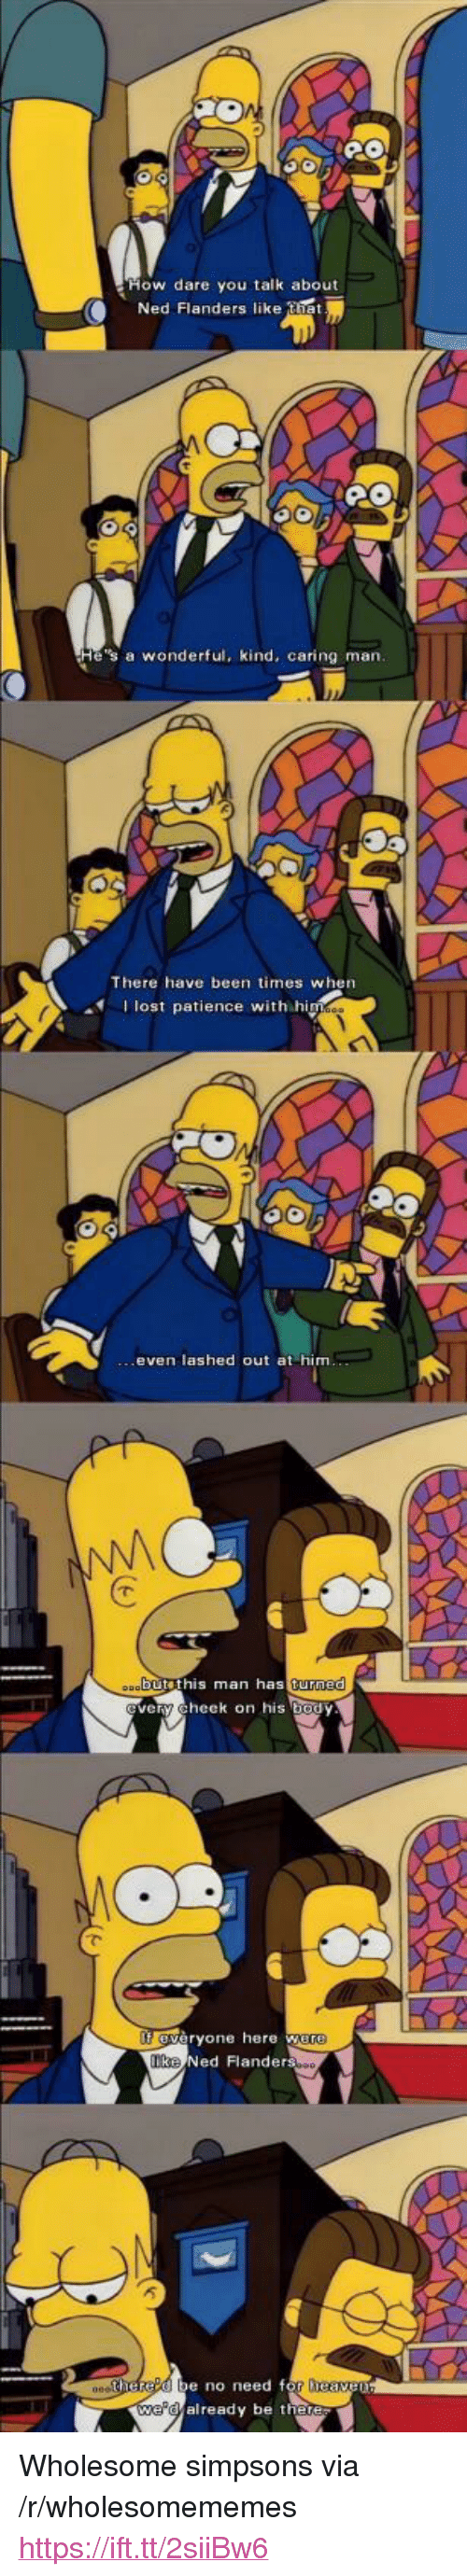 """Ned Flanders, The Simpsons, and Lost: ow dare you talk about  Ned Flanders like tiet  e's a wonderful, kind, caring marn  There have been times when  I lost patience with hi  even lashed out at him  butethis man as  turned  ery cheek on his body  eryone here w  Ned Flanders  e no need f  already be the <p>Wholesome simpsons via /r/wholesomememes <a href=""""https://ift.tt/2siiBw6"""">https://ift.tt/2siiBw6</a></p>"""